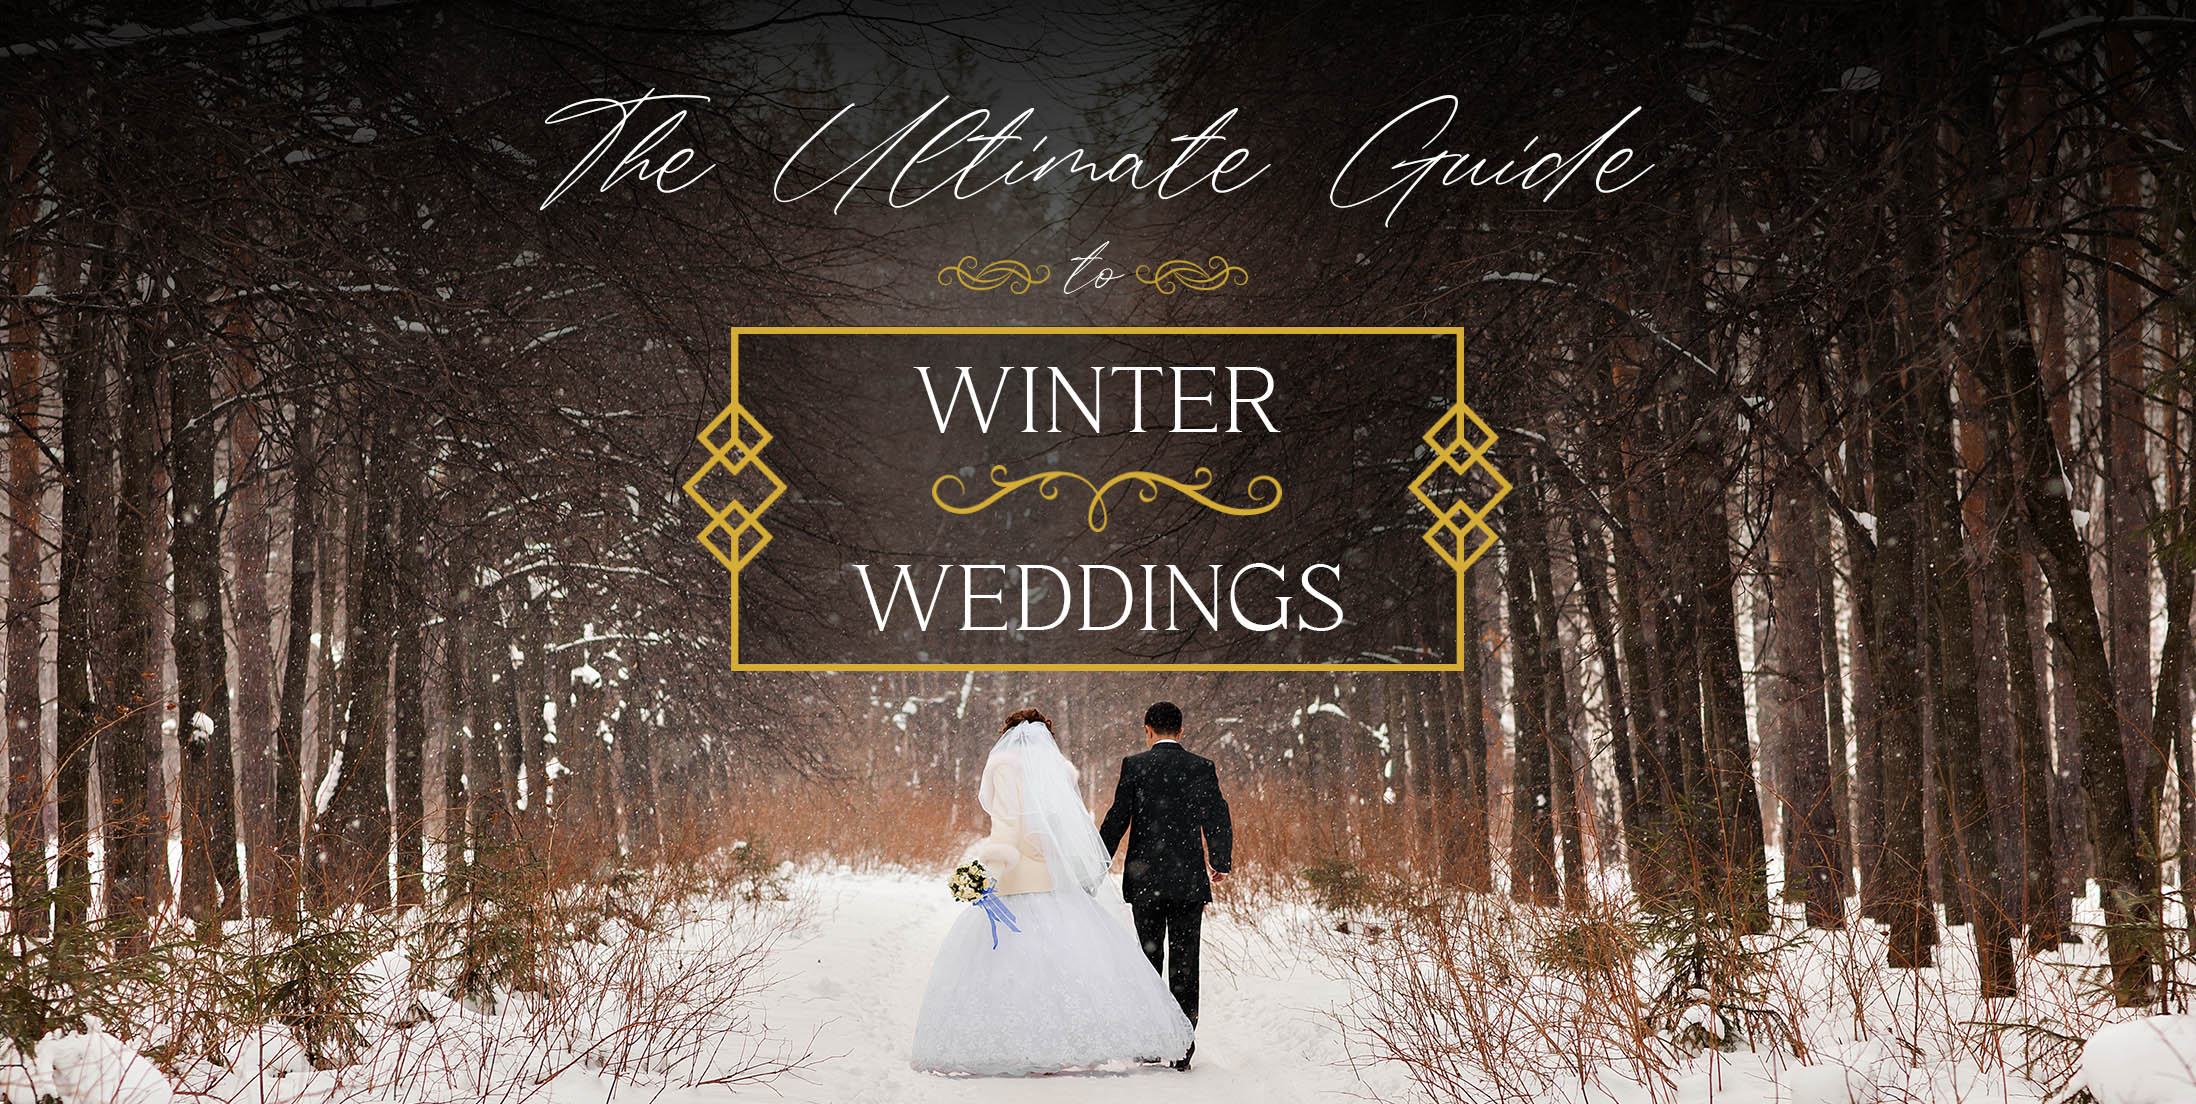 The Winter Wedding Guide